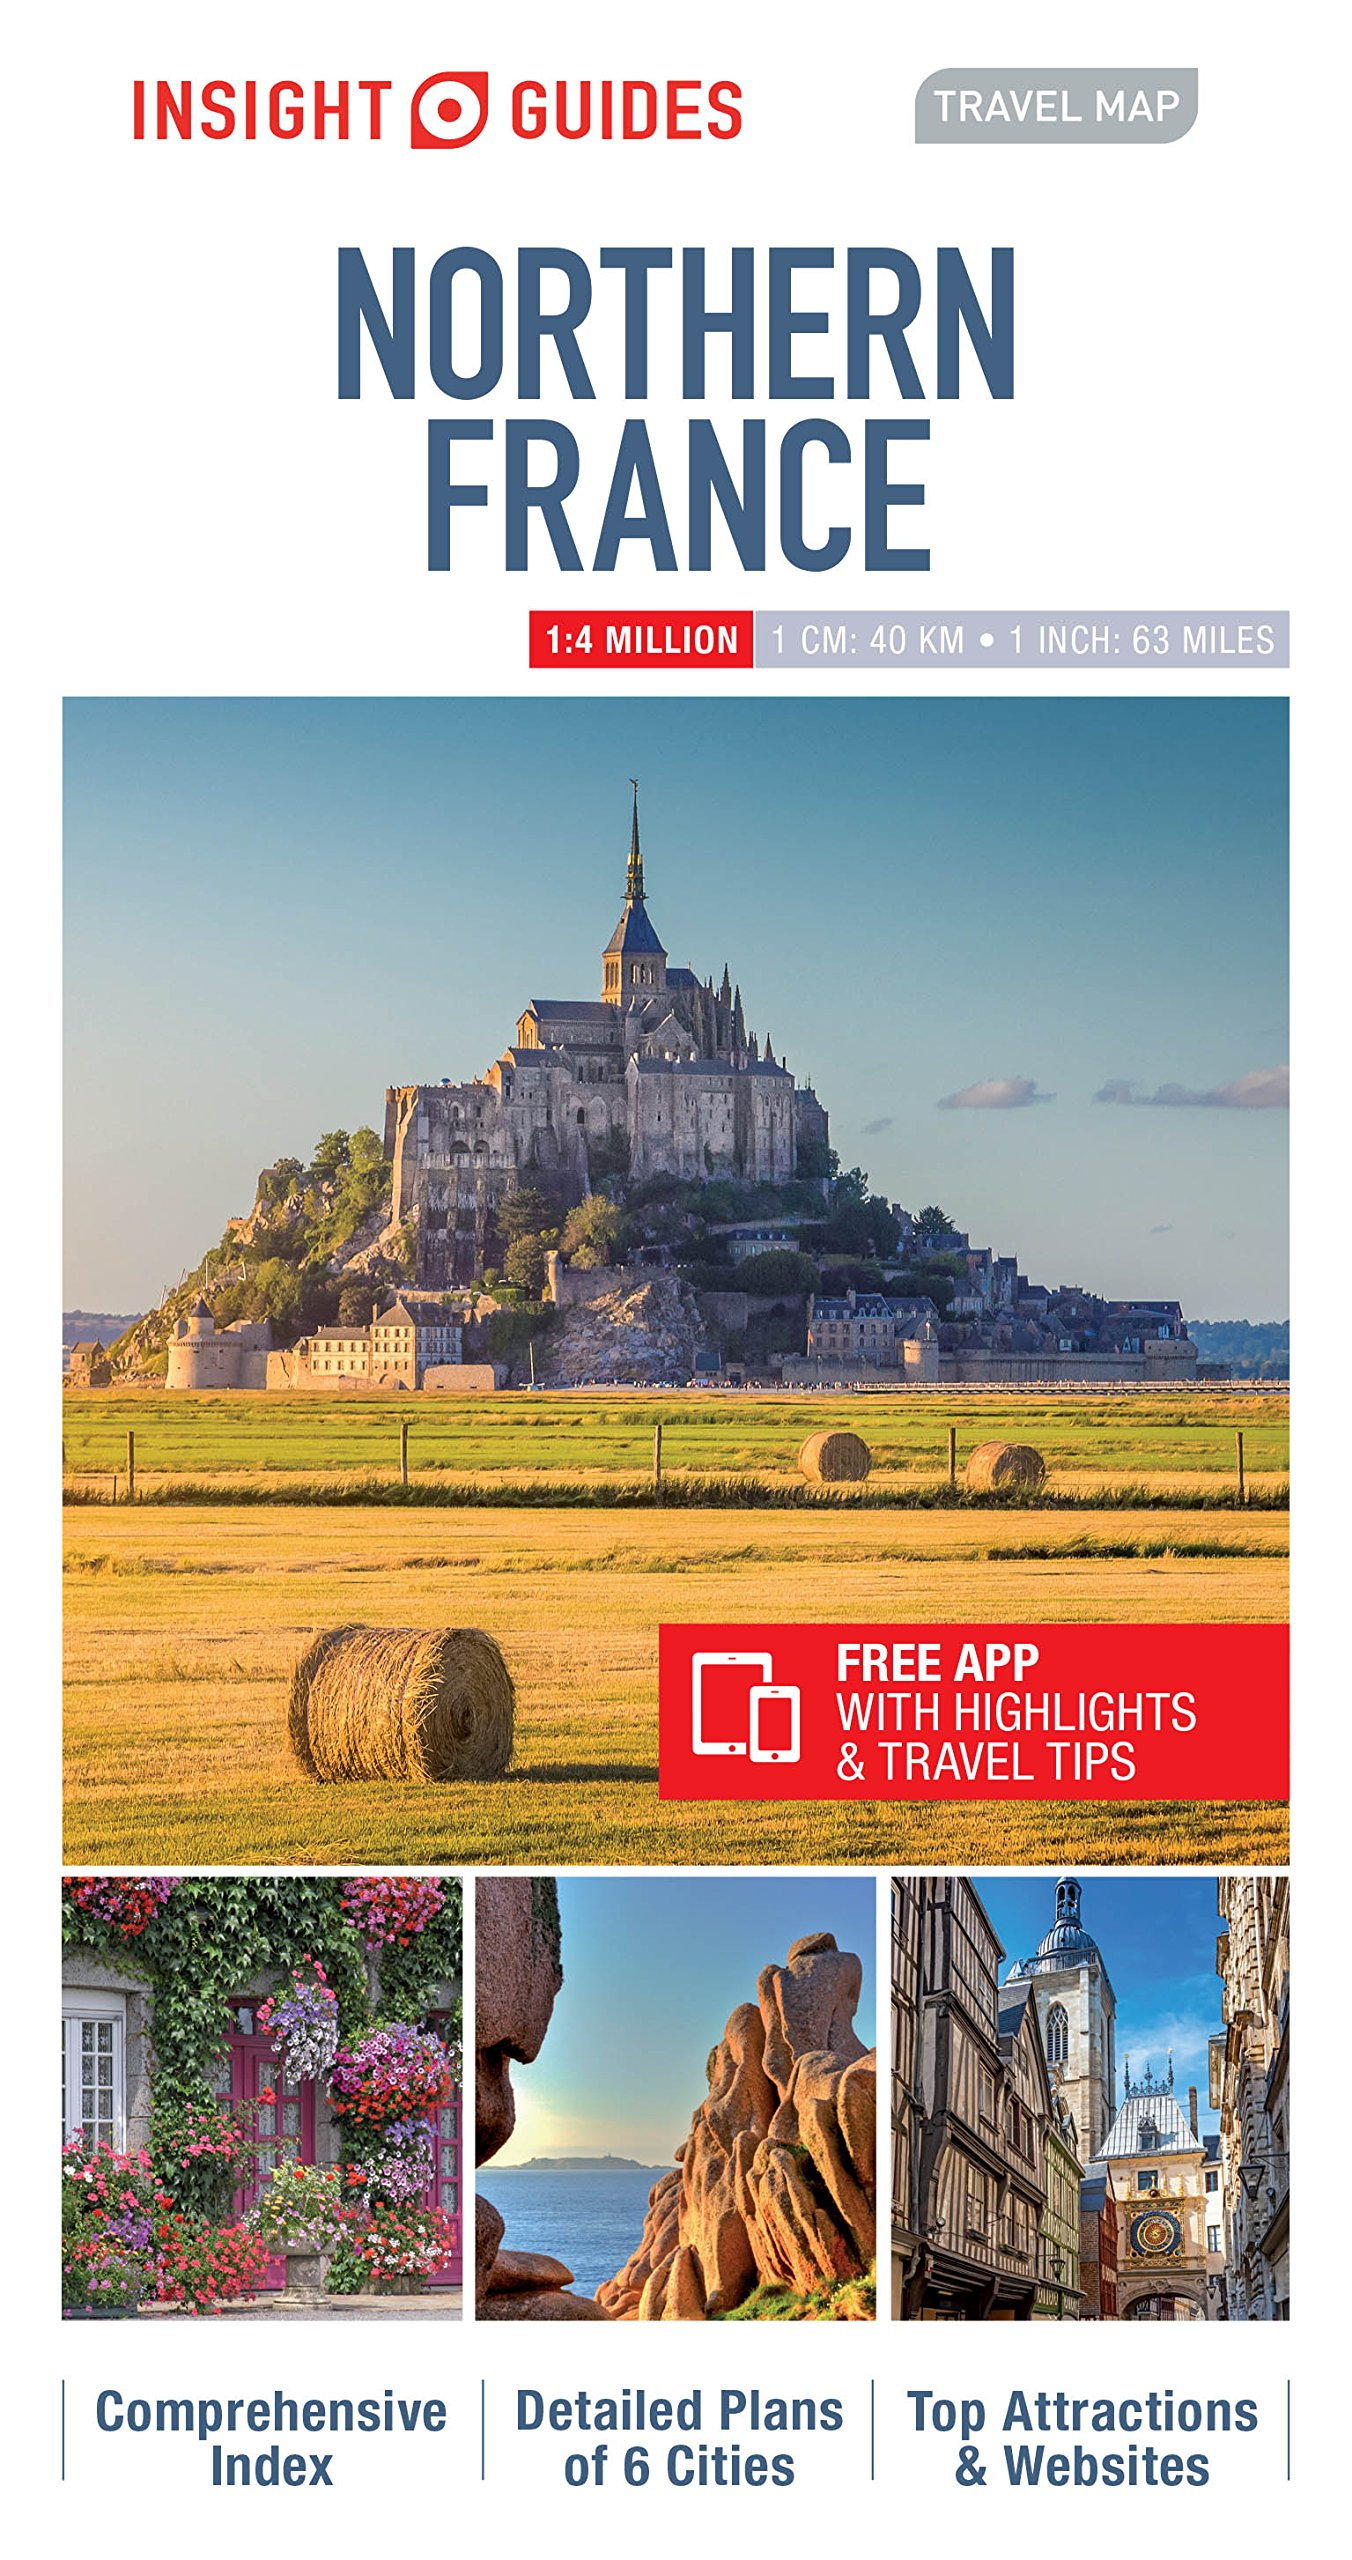 Insight guides travel map northern france insight travel maps insight guides travel map northern france insight travel maps amazon insight guides 9781780055091 books gumiabroncs Gallery